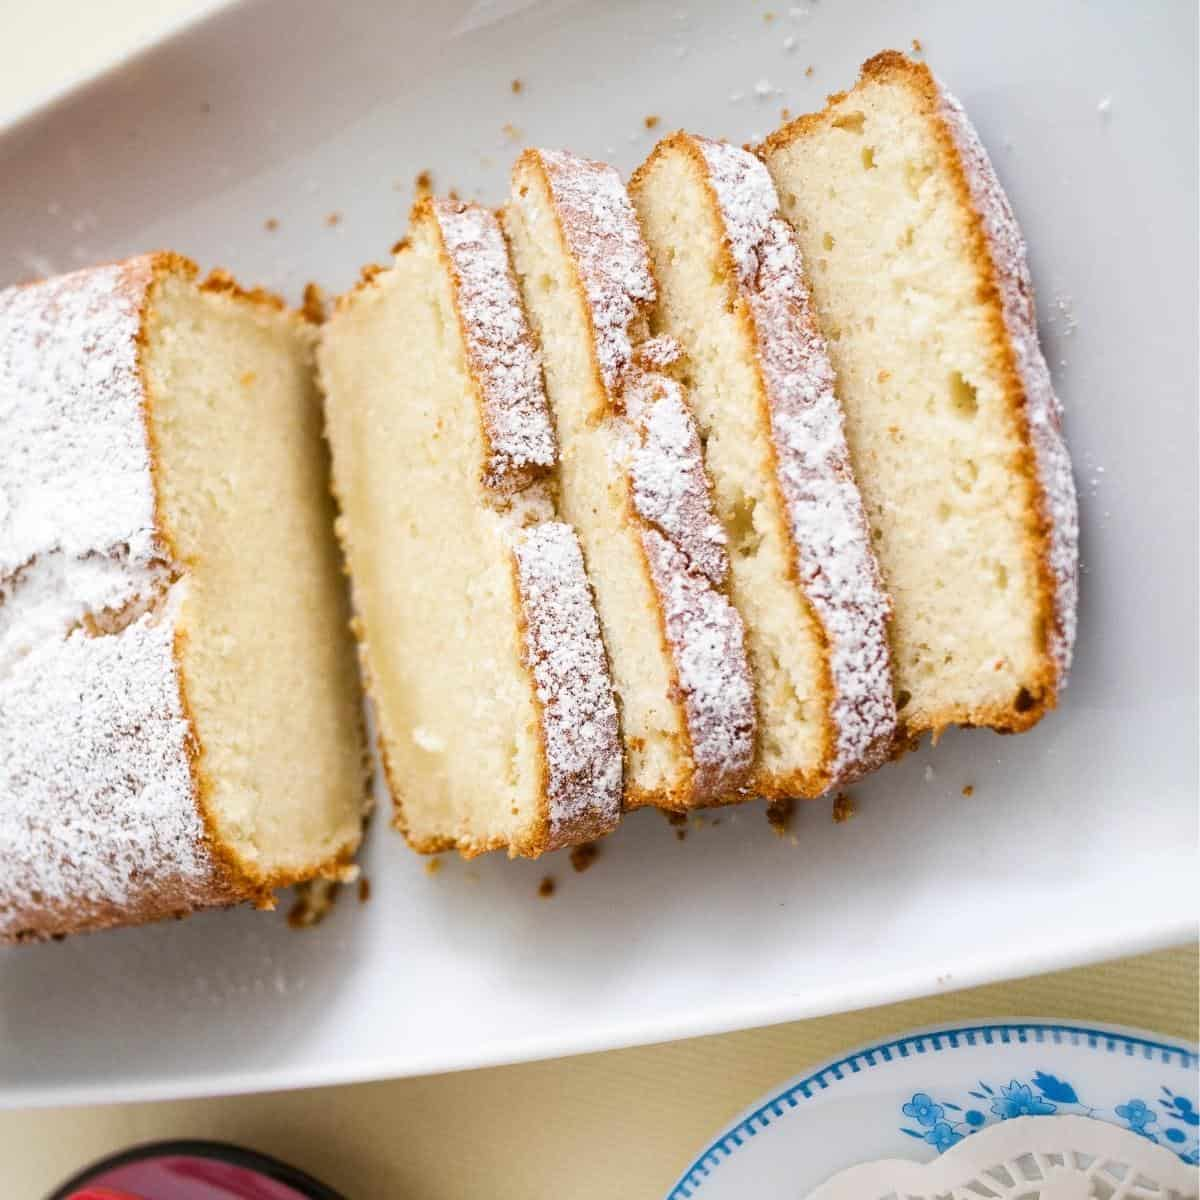 Slices of pound cake on a platter.